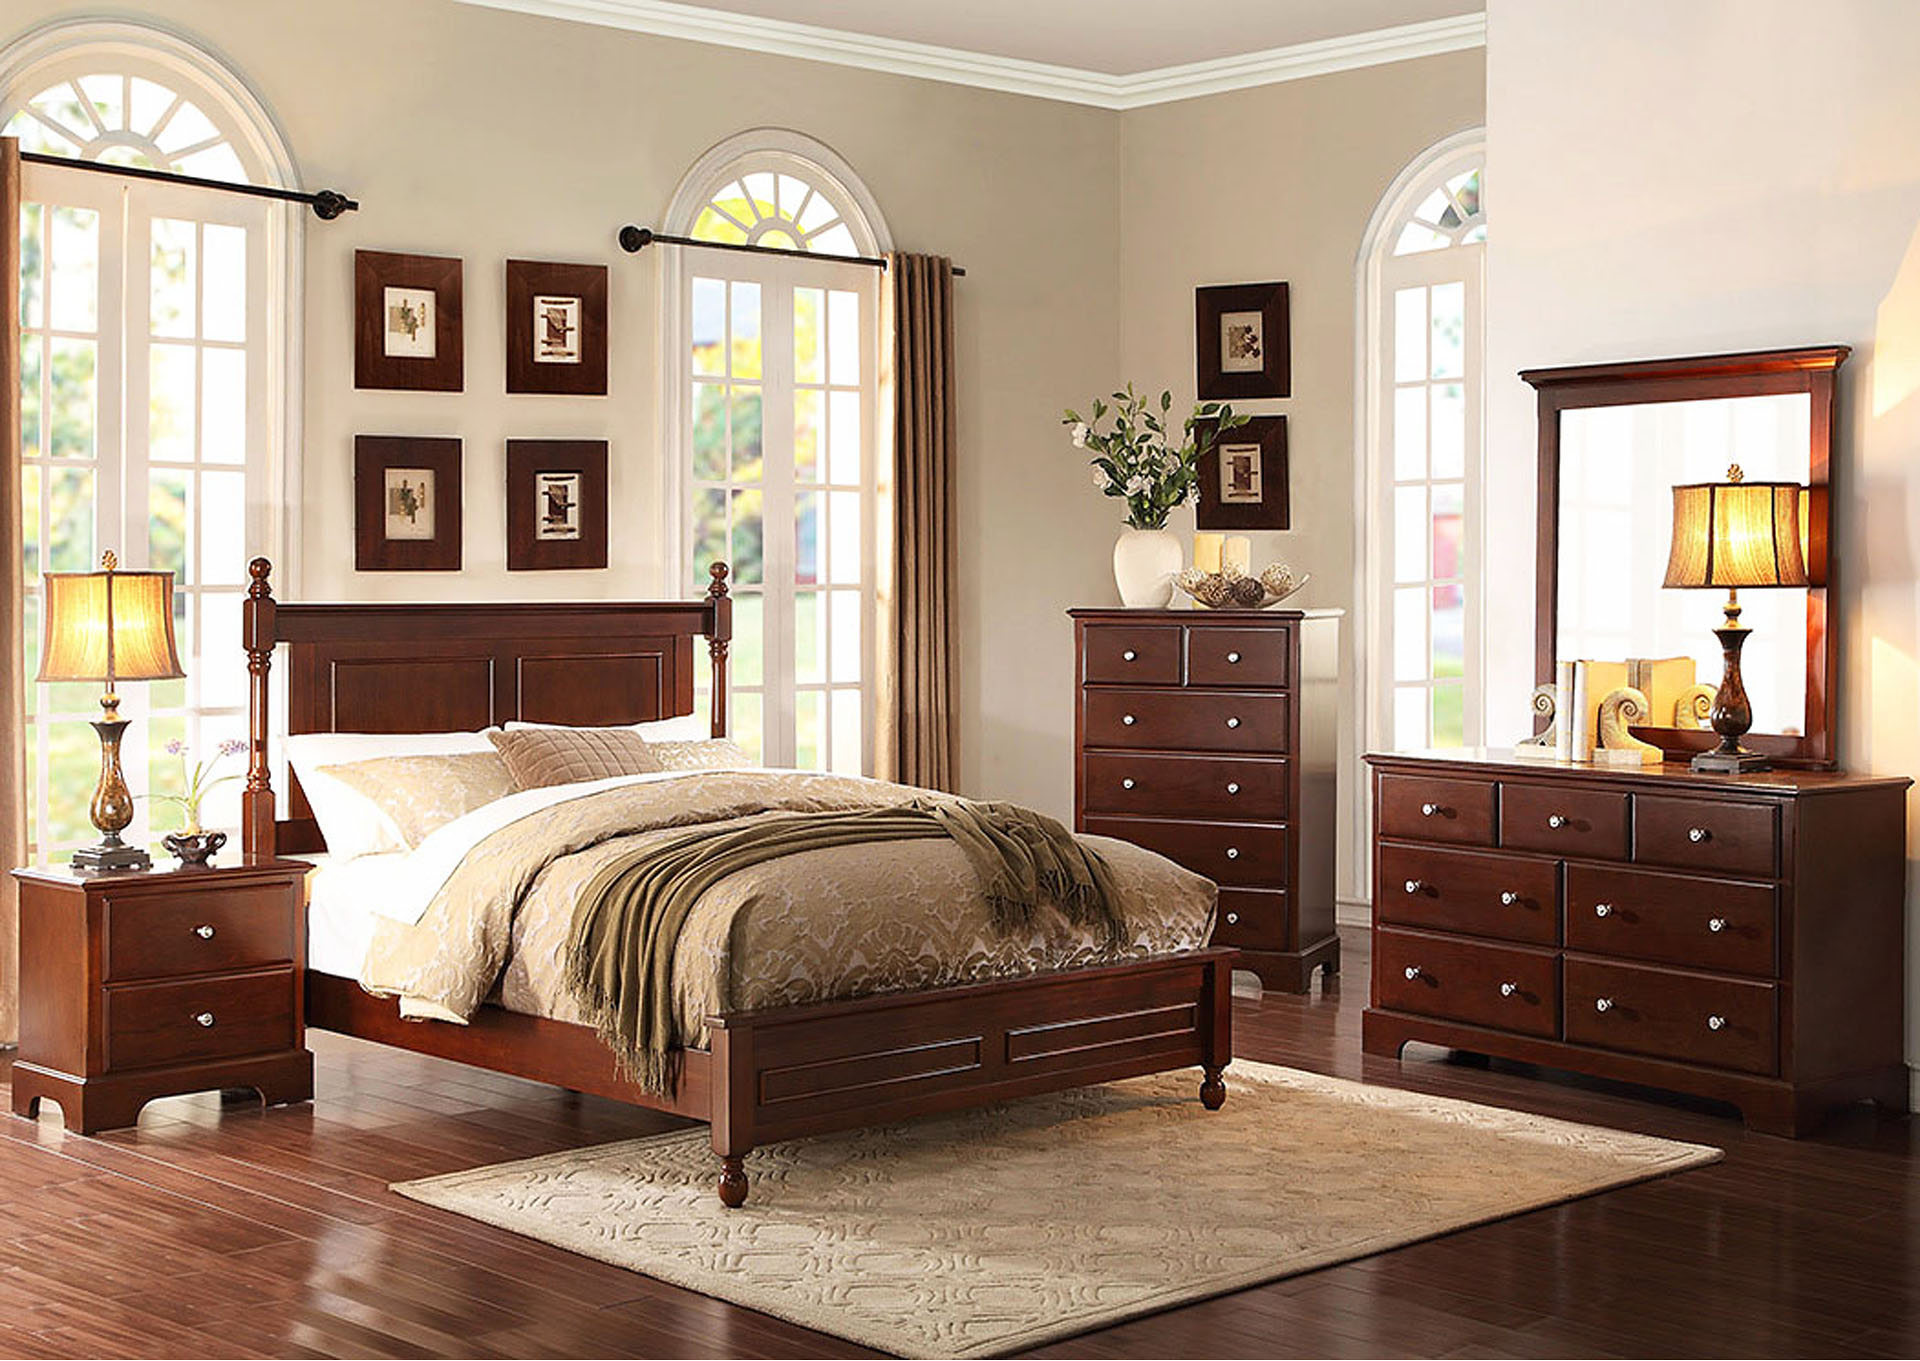 Morelle Cherry Queen Bed w/Dresser, Mirror, Drawer Chest & Nightstand,Homelegance